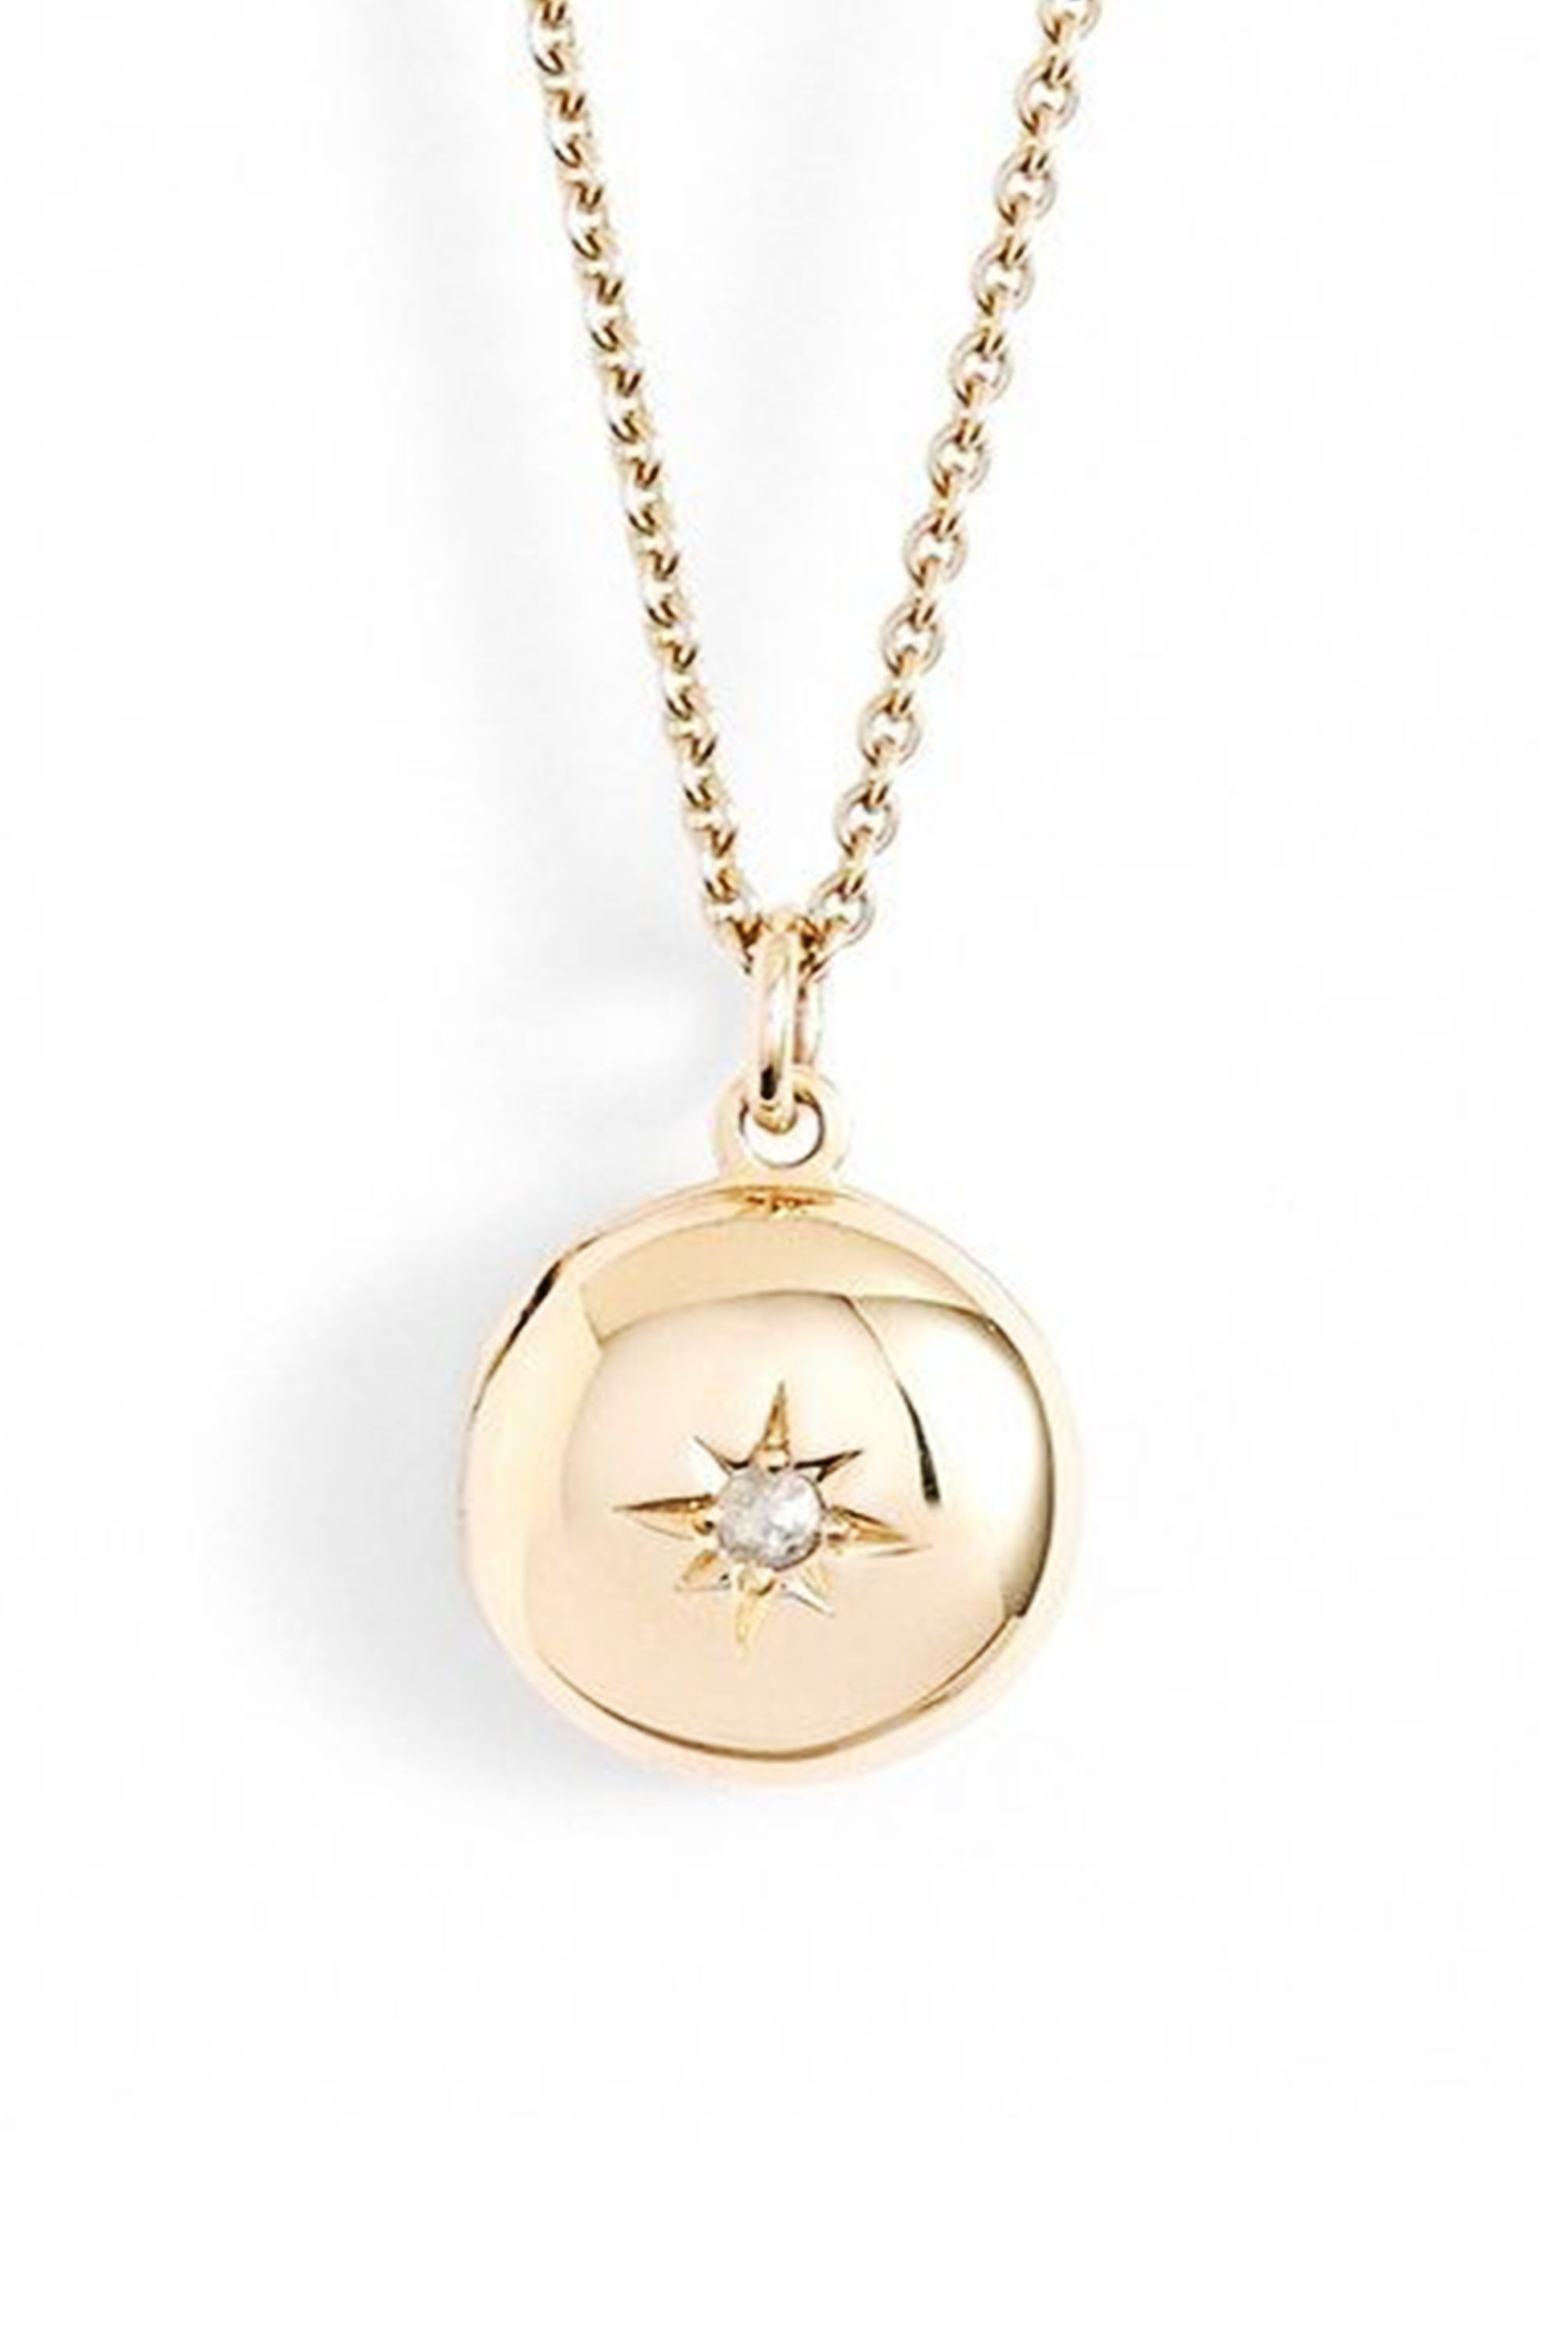 cart the catholic locket company heart pendant to wishlist photo always add in my